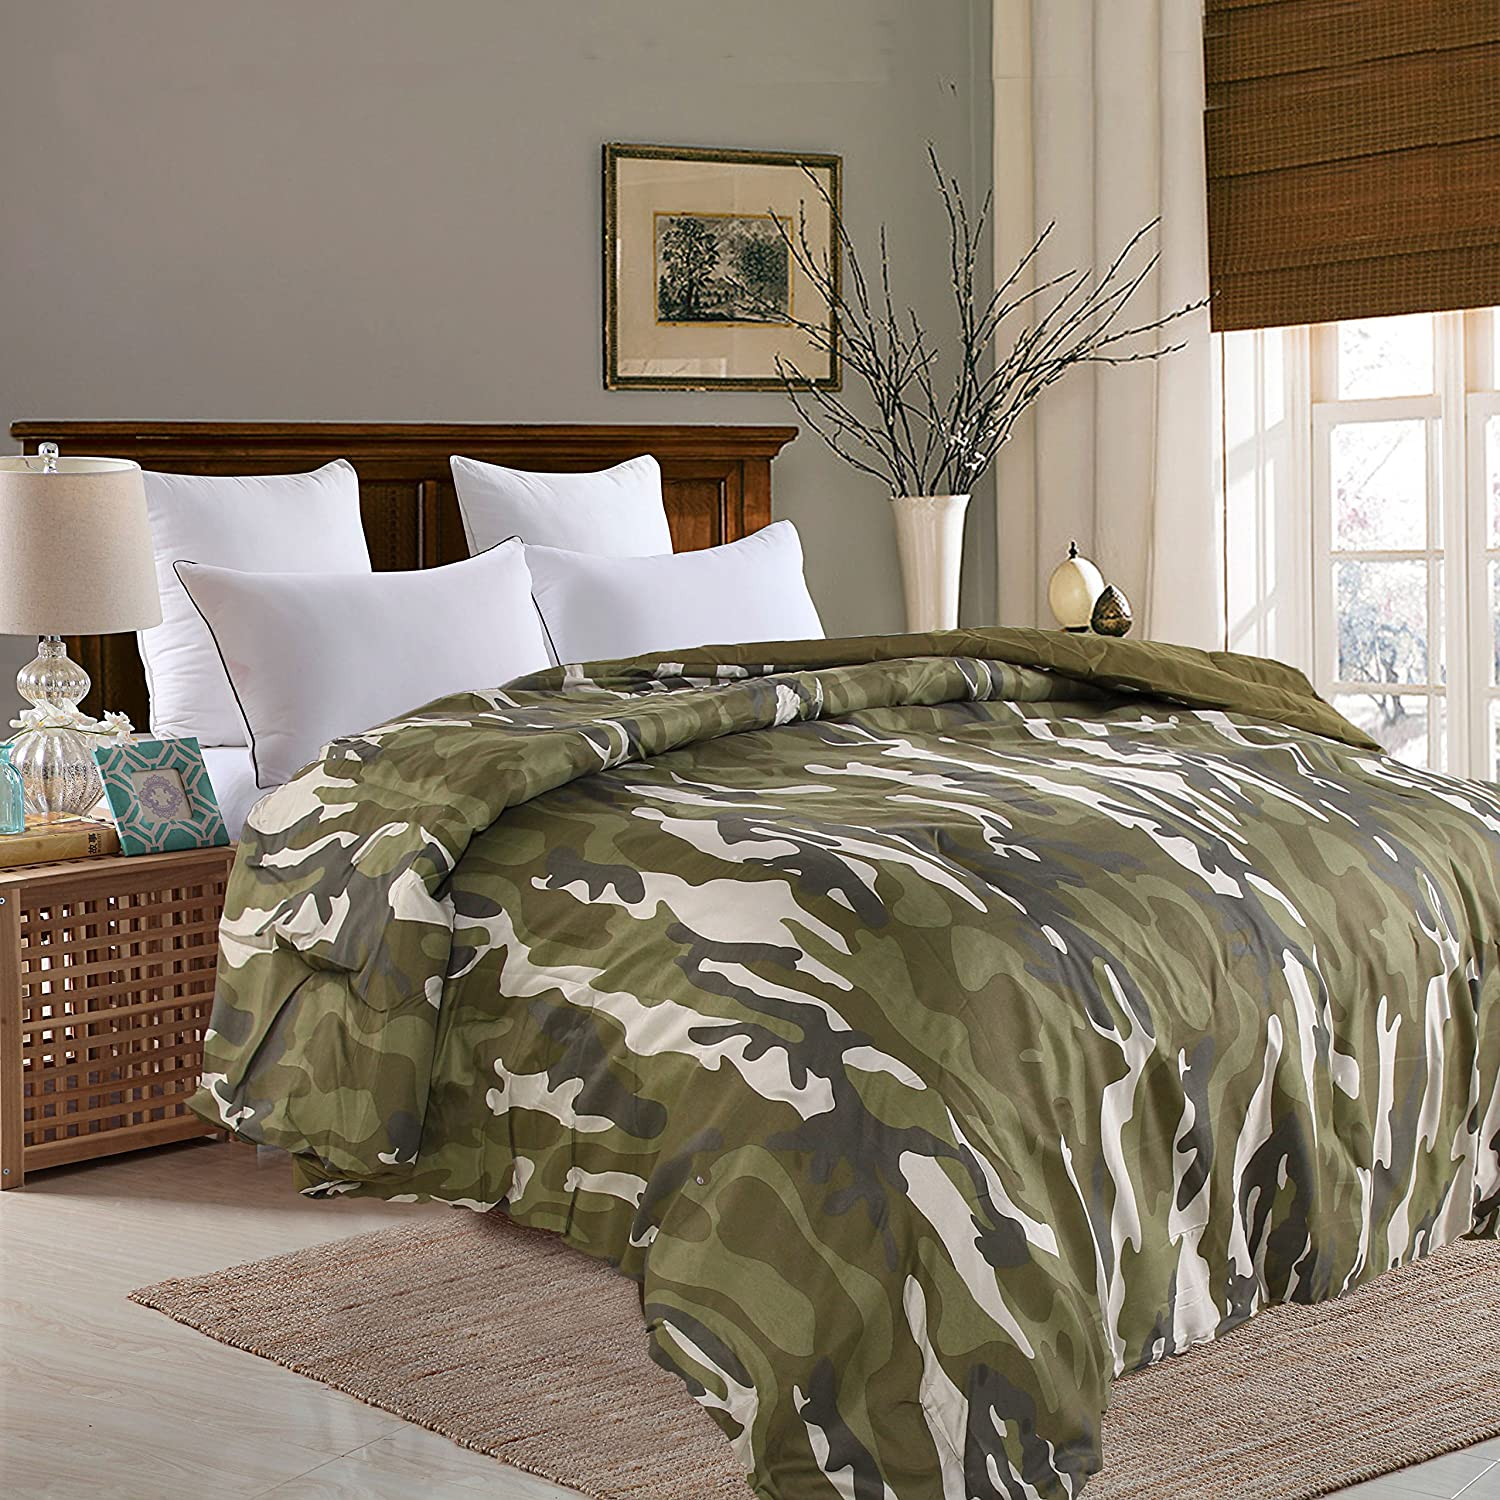 Eastend Home Fashions Jungle Print Comforter, Full